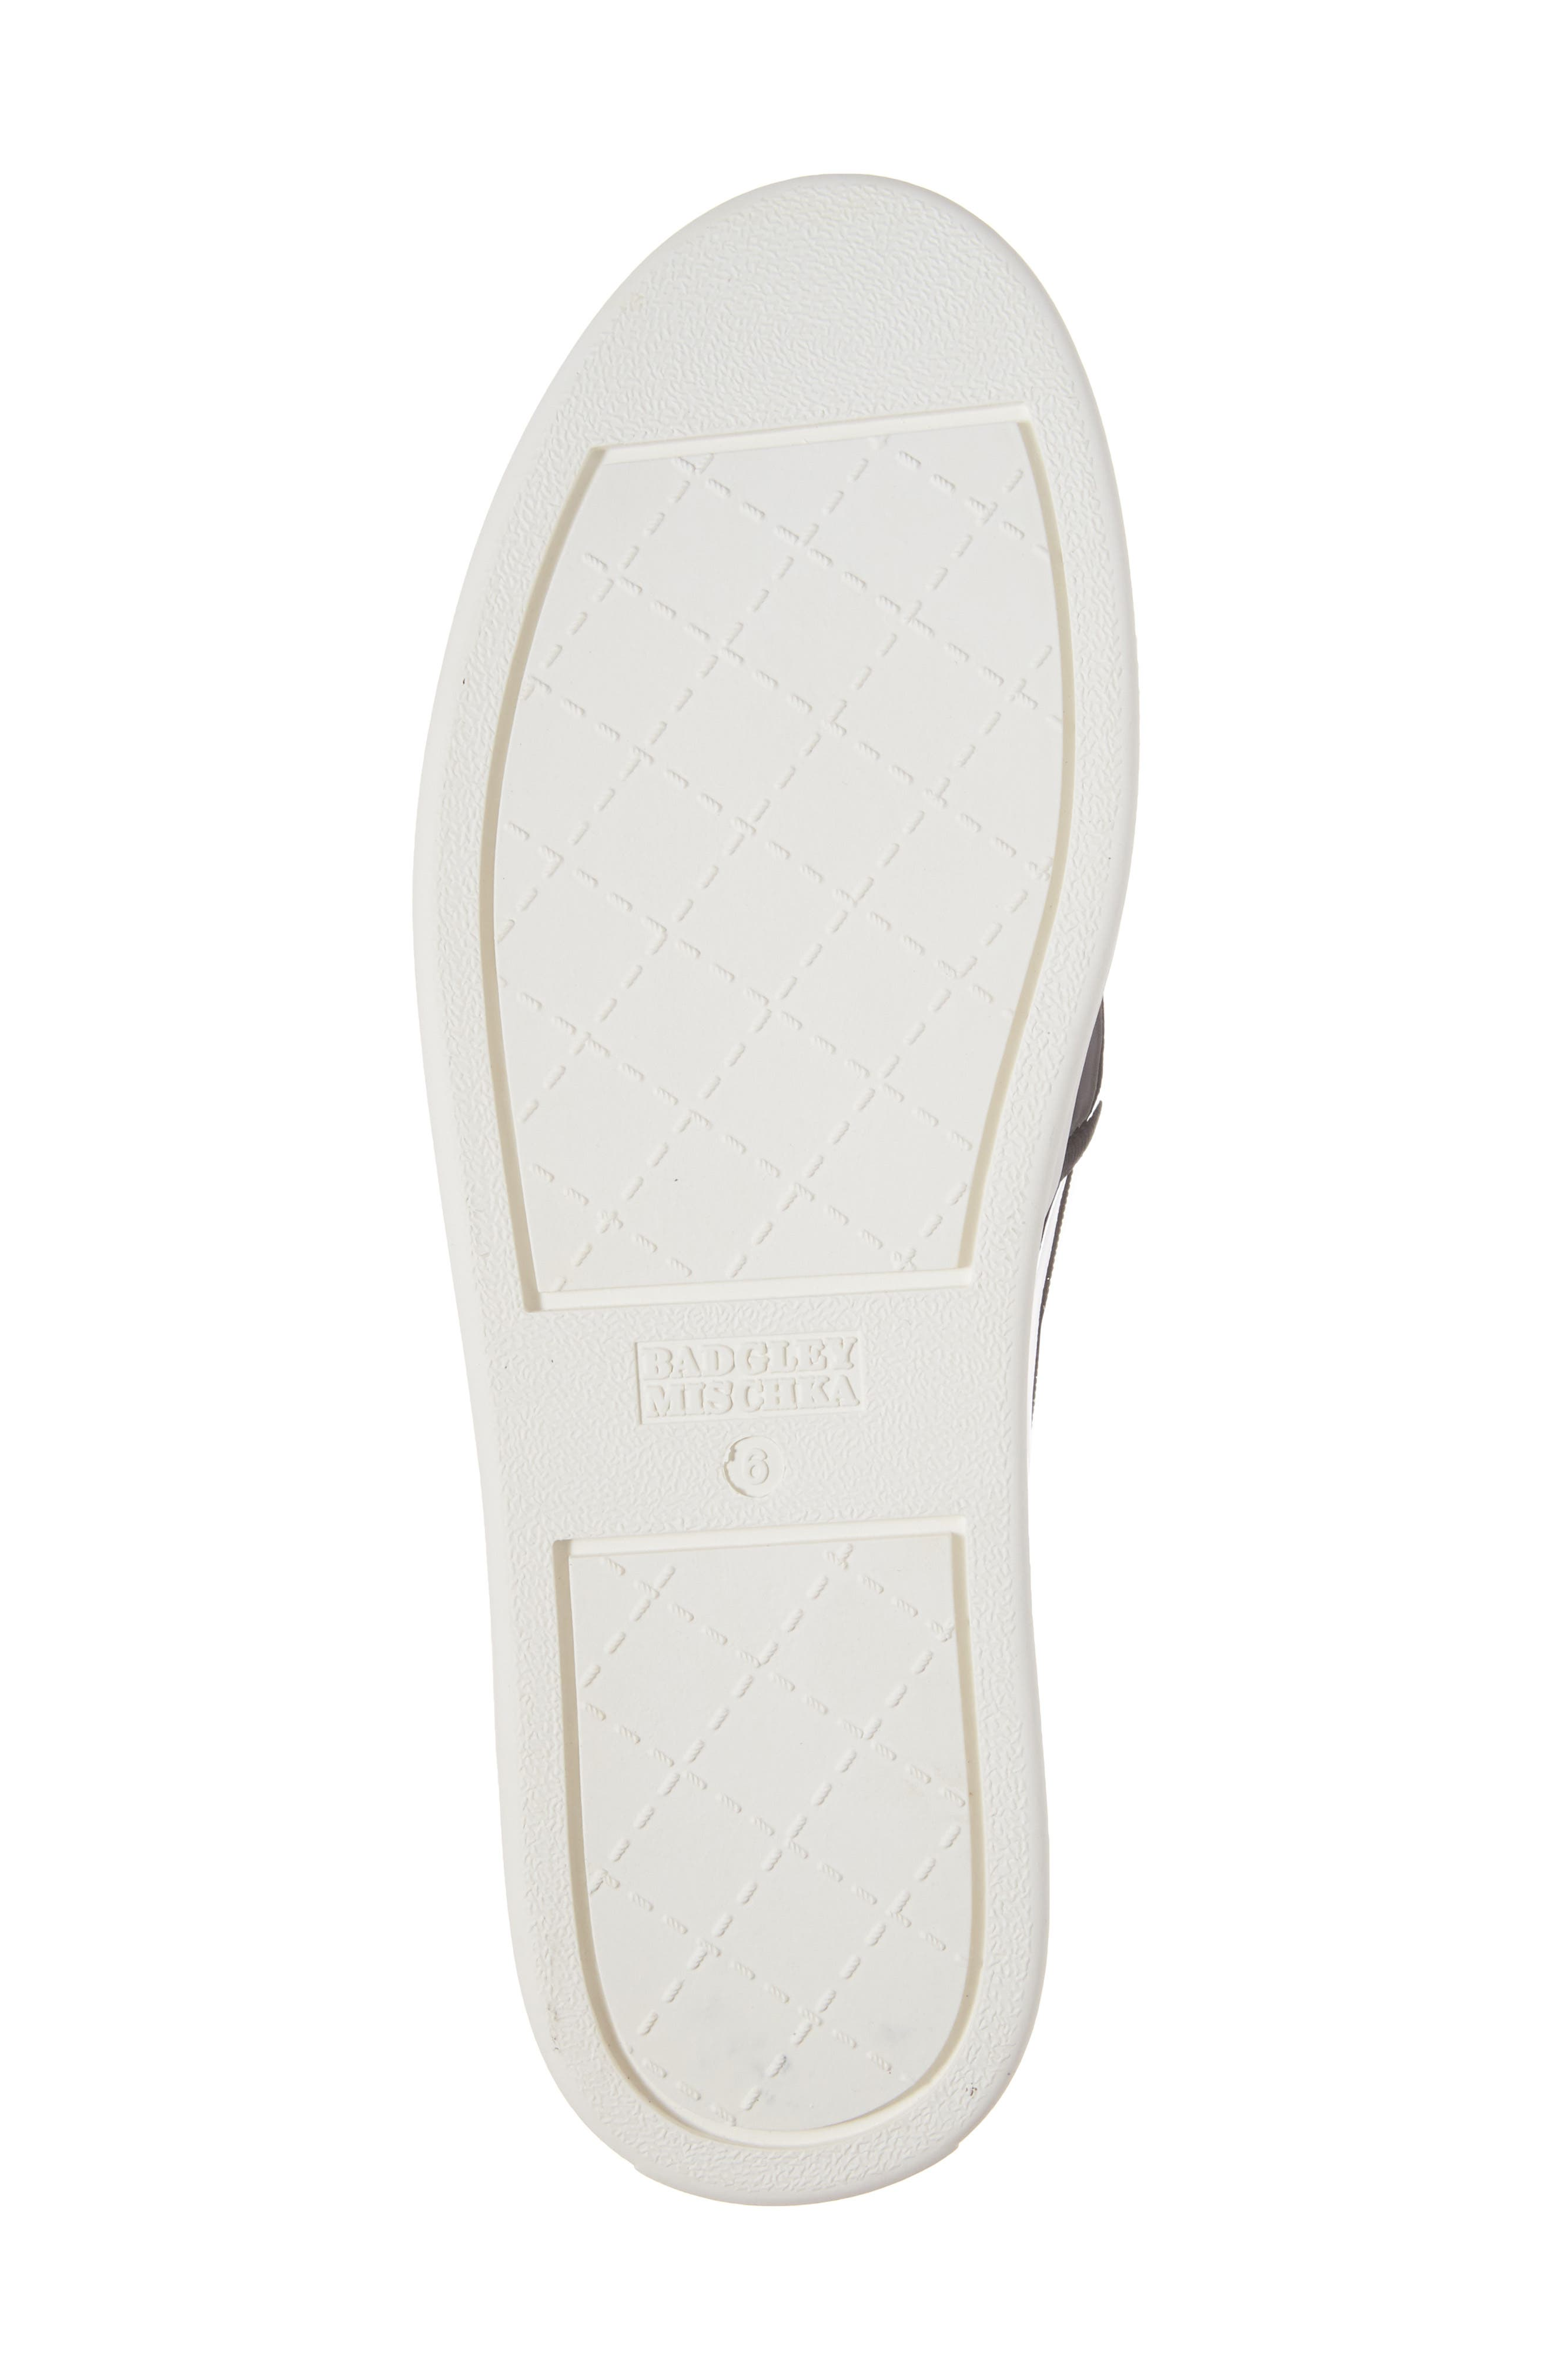 Badgley Mischka Barre Crystal Embellished Slip-On Sneaker,                             Alternate thumbnail 6, color,                             011